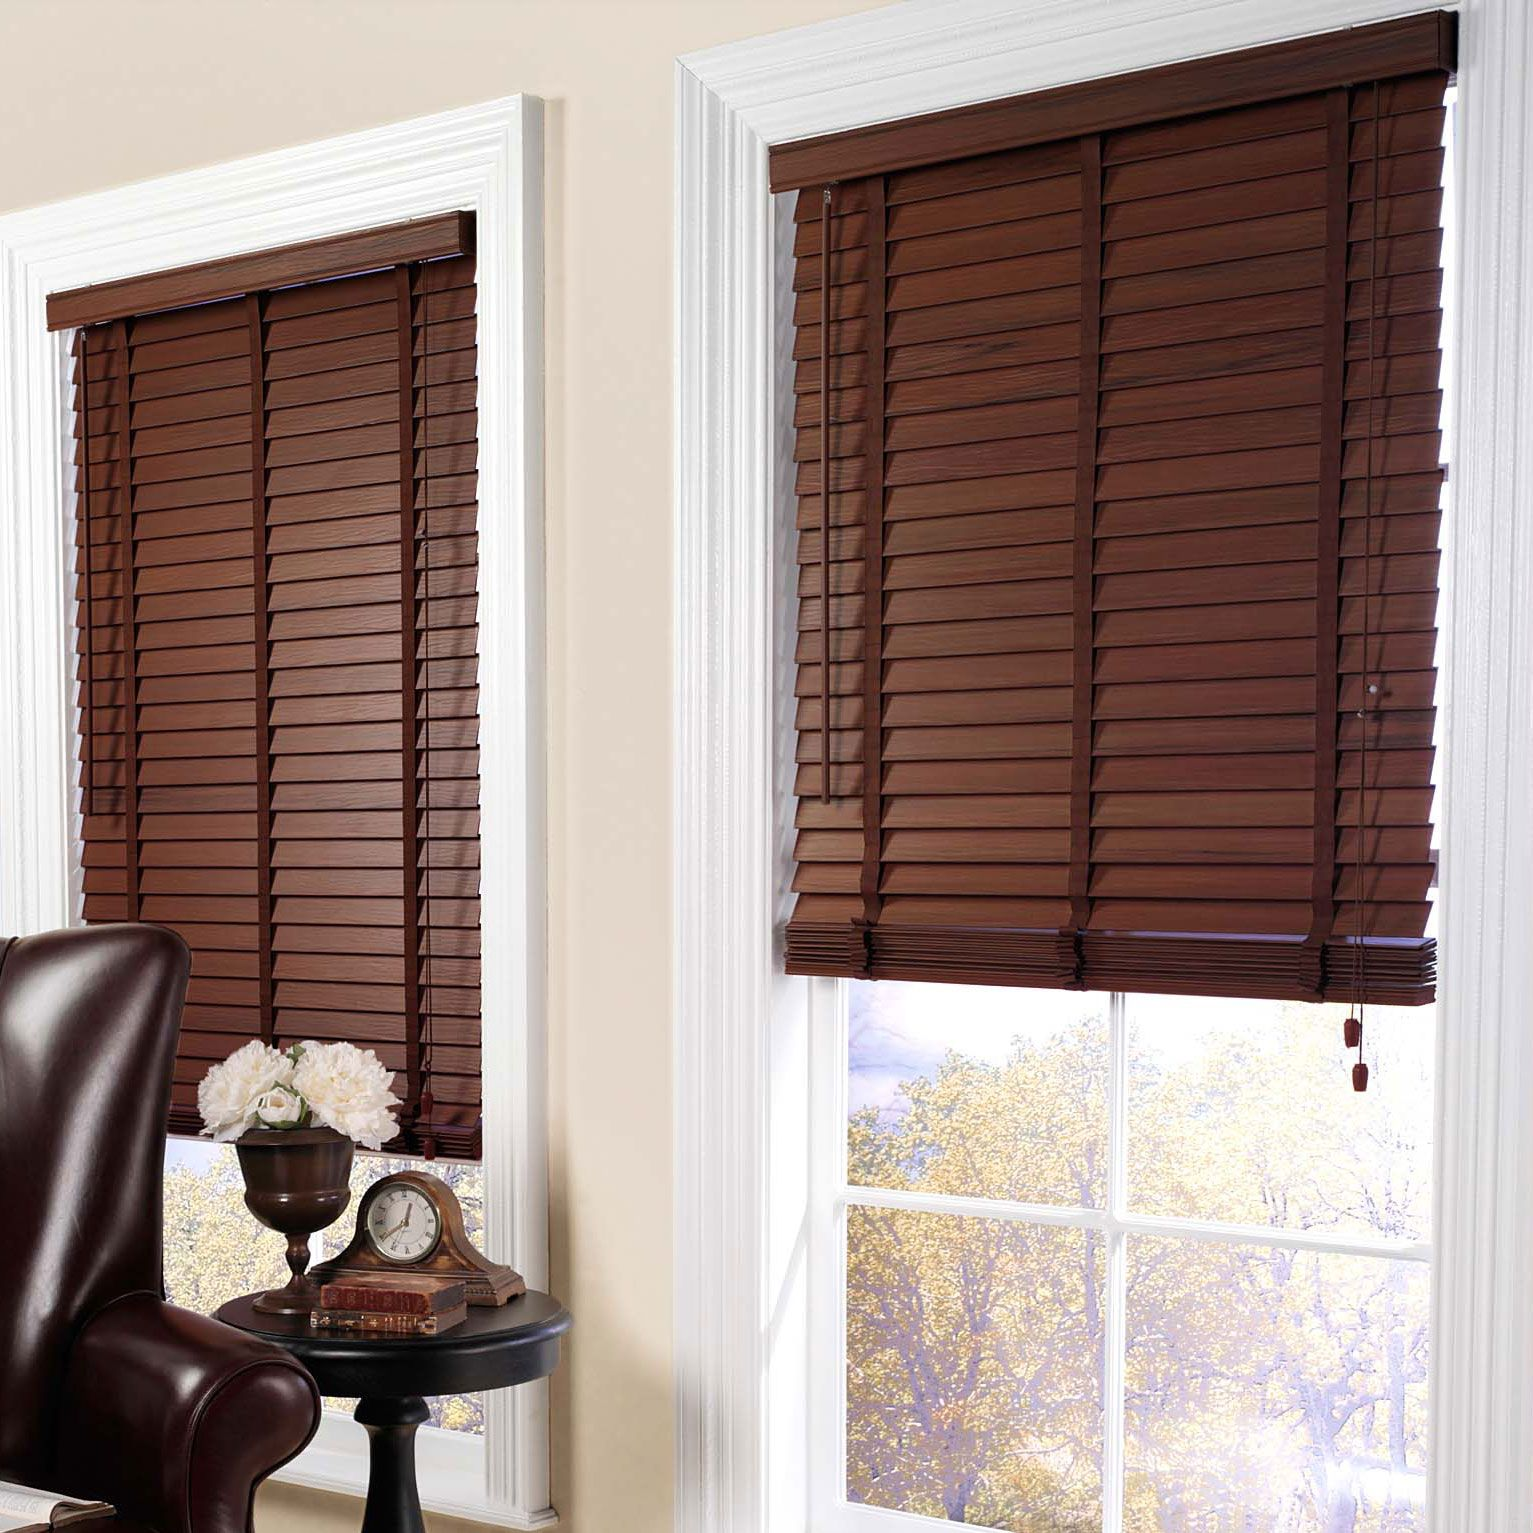 How to Use Venetian Blinds